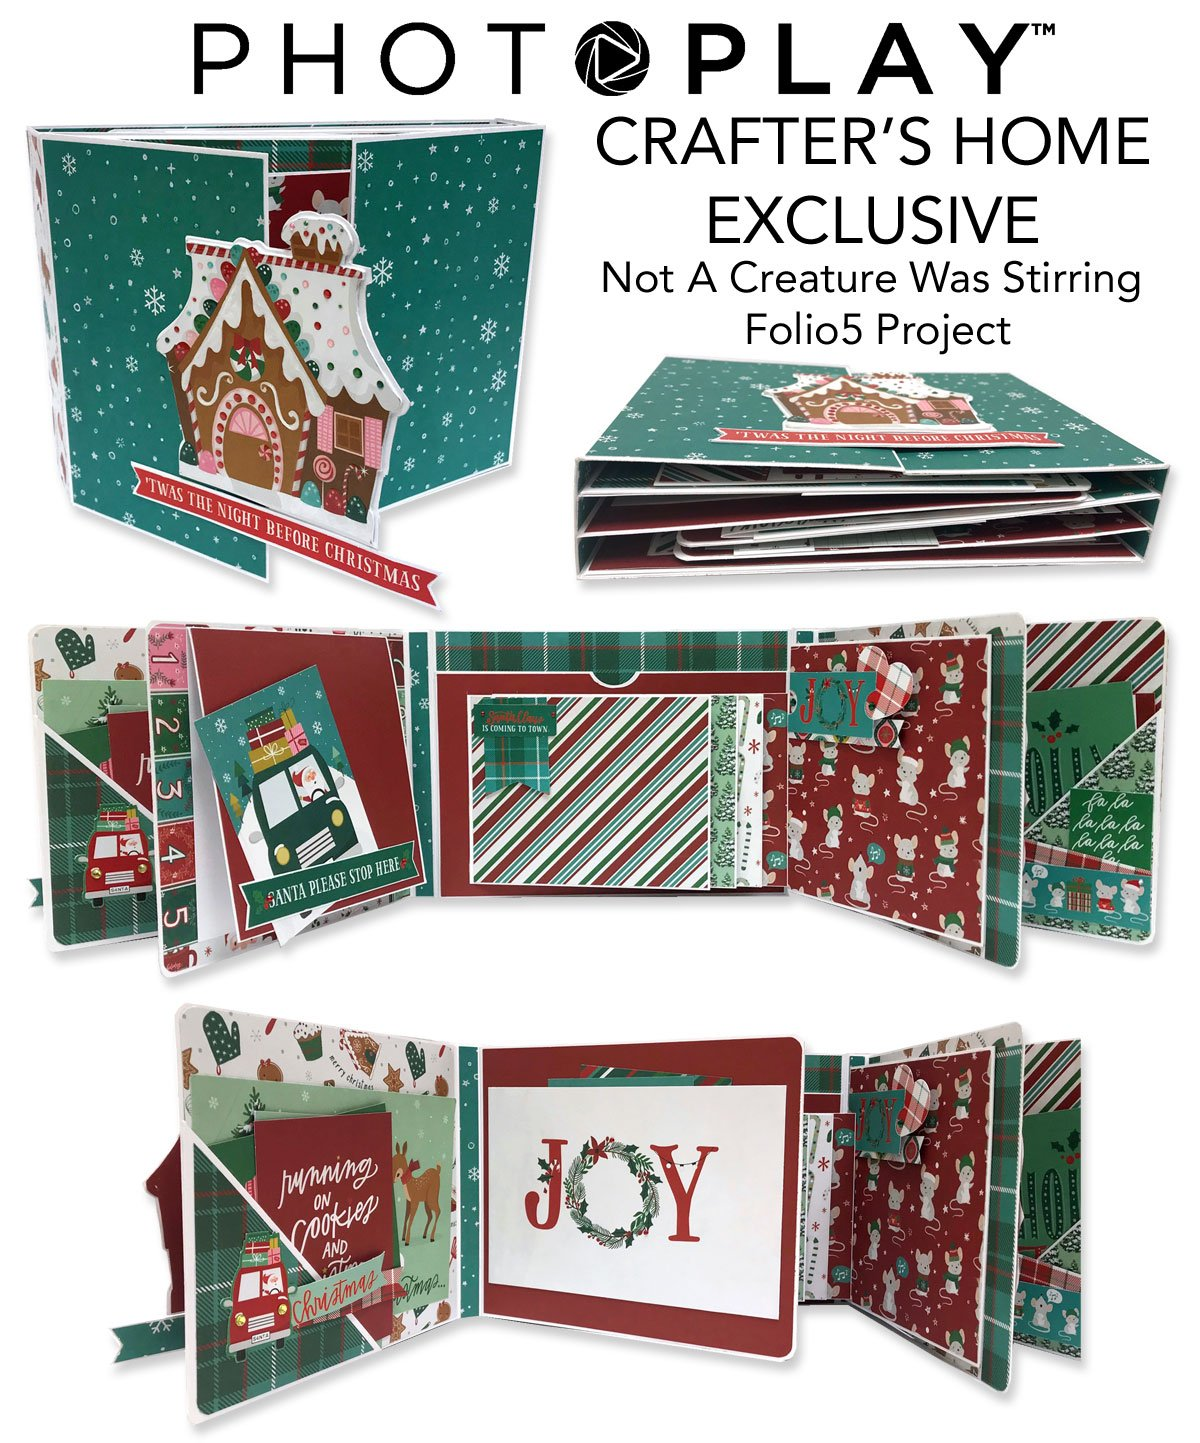 Exclusive Folio 5 Project- Not A Creature Was Stirring